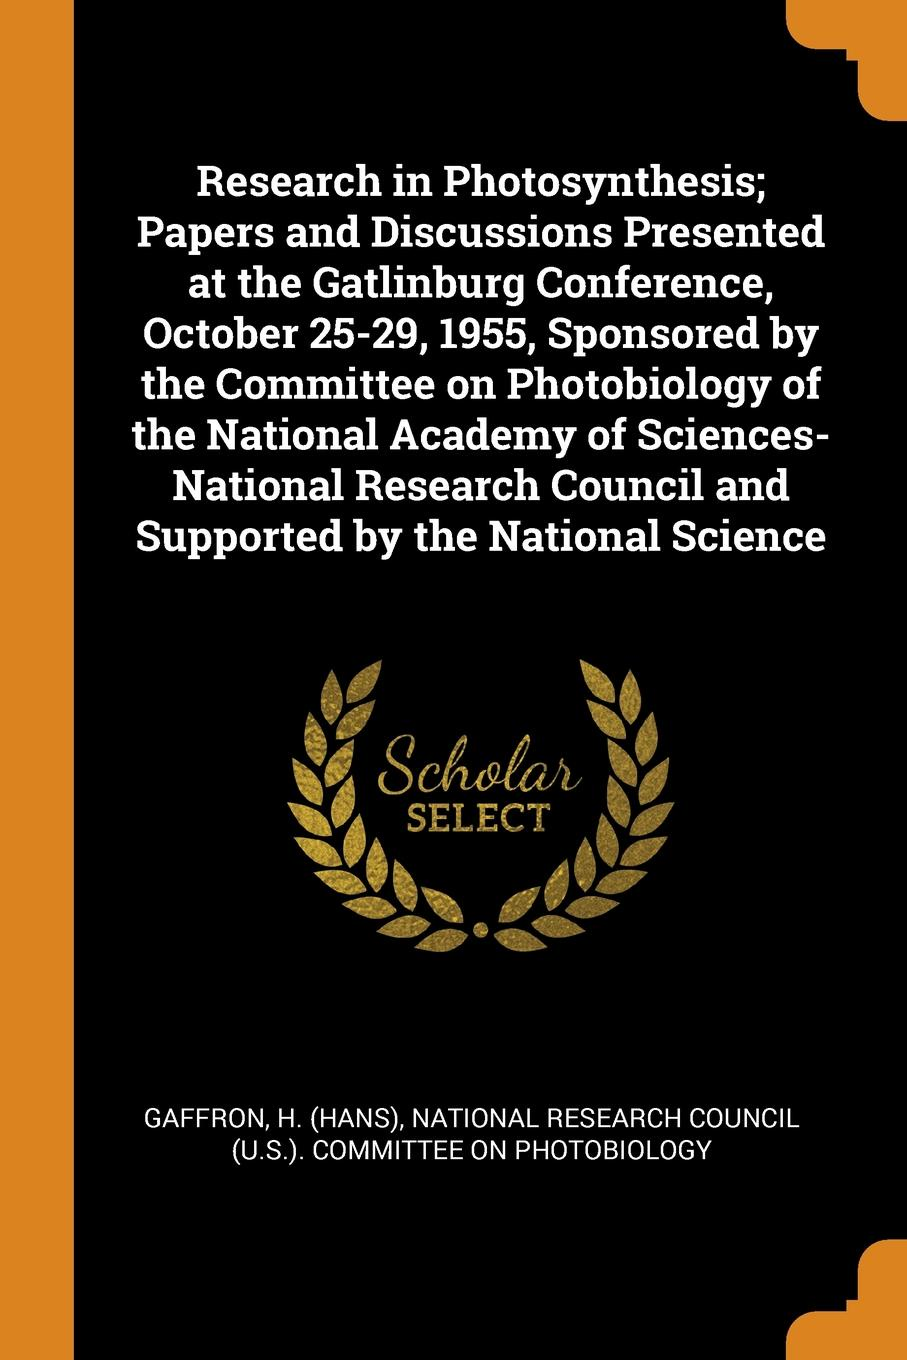 H Gaffron Research in Photosynthesis; Papers and Discussions Presented at the Gatlinburg Conference, October 25-29, 1955, Sponsored by the Committee on Photobiology of the National Academy of Sciences-National Research Council and Supported by the National ... nap national academy press research priorities in tropical biology